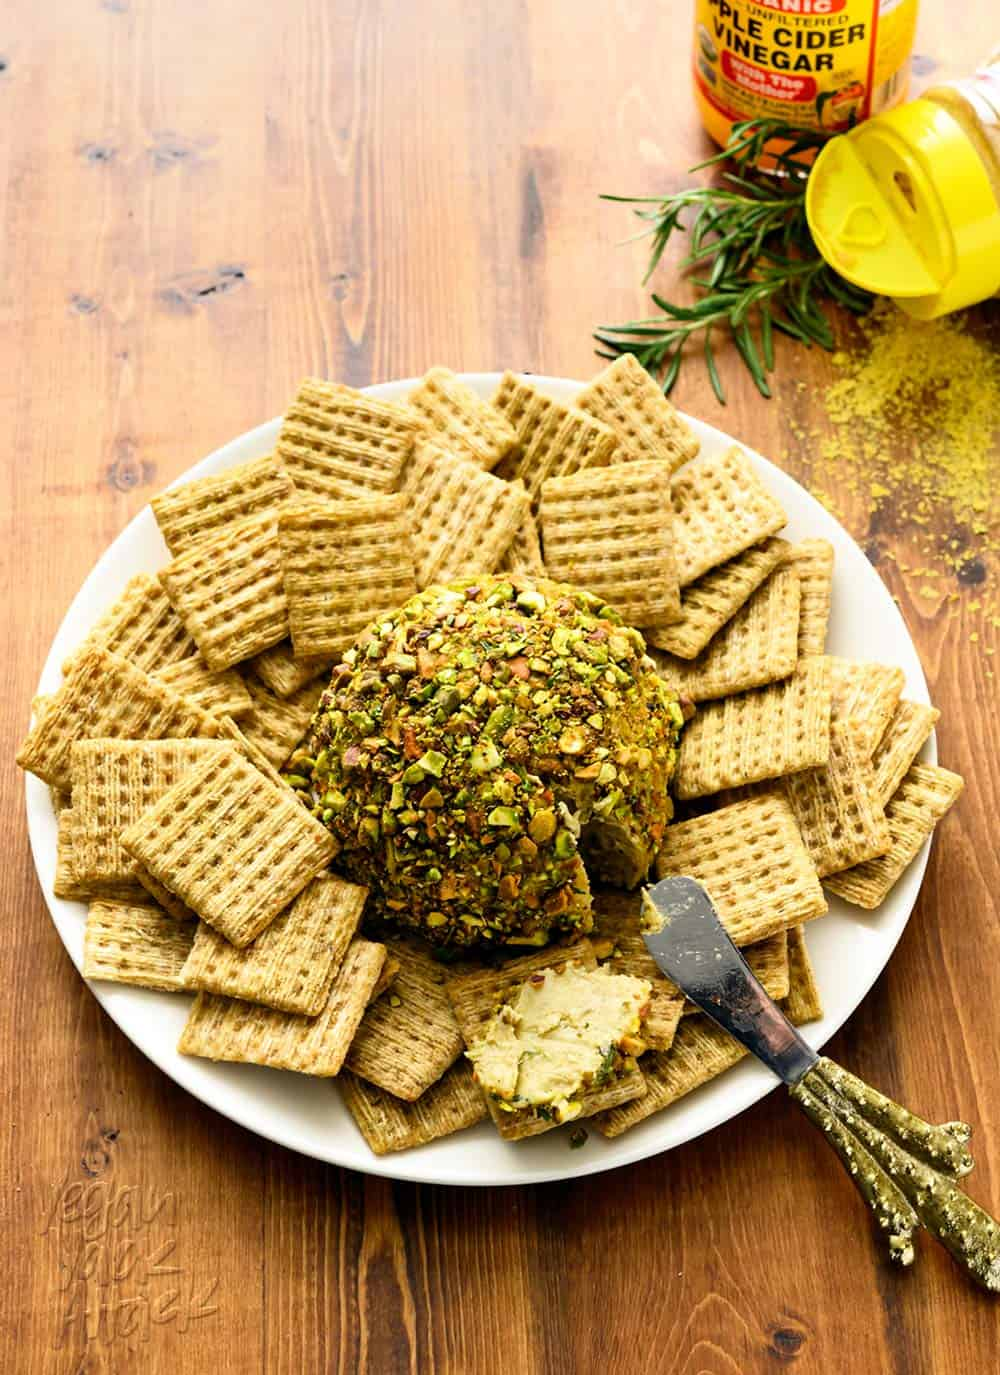 Vegan cheese ball, crusted with chopped pistachios, on a plate, surrounded by wheat crackers.